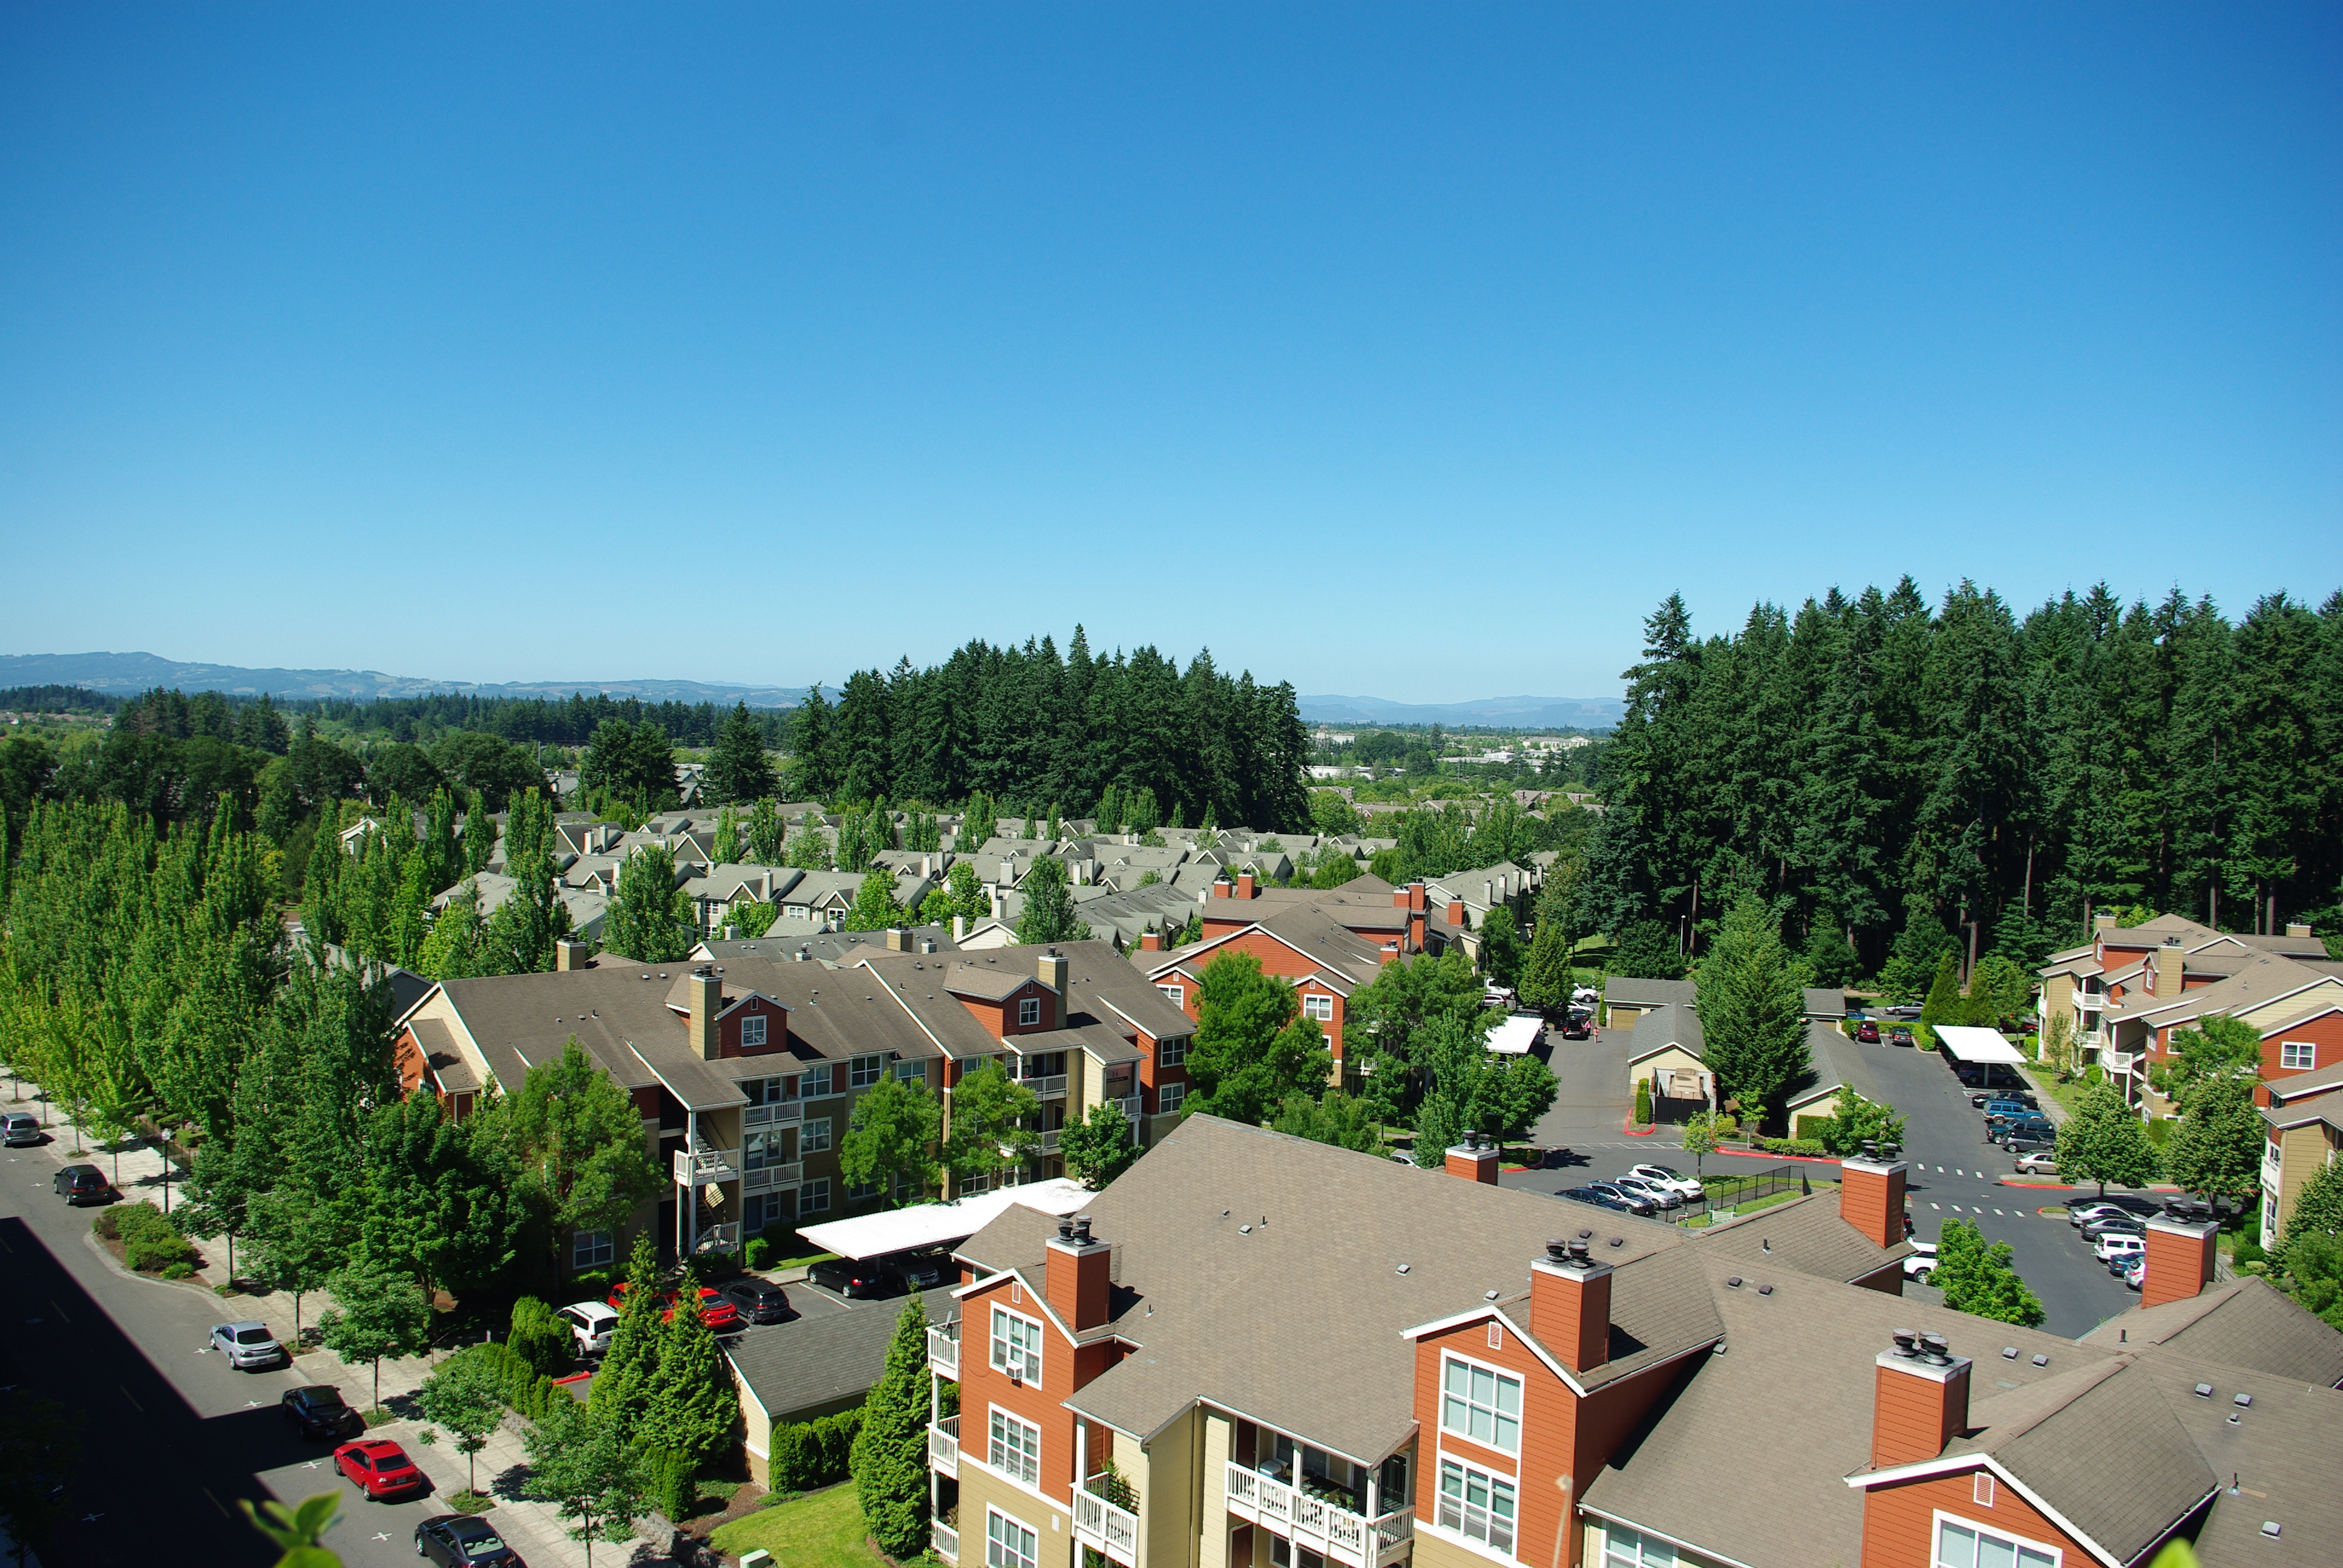 File Tualatin Valley Looking Sw With Palladia Apartments In Forground Hillsboro Oregon Jpg